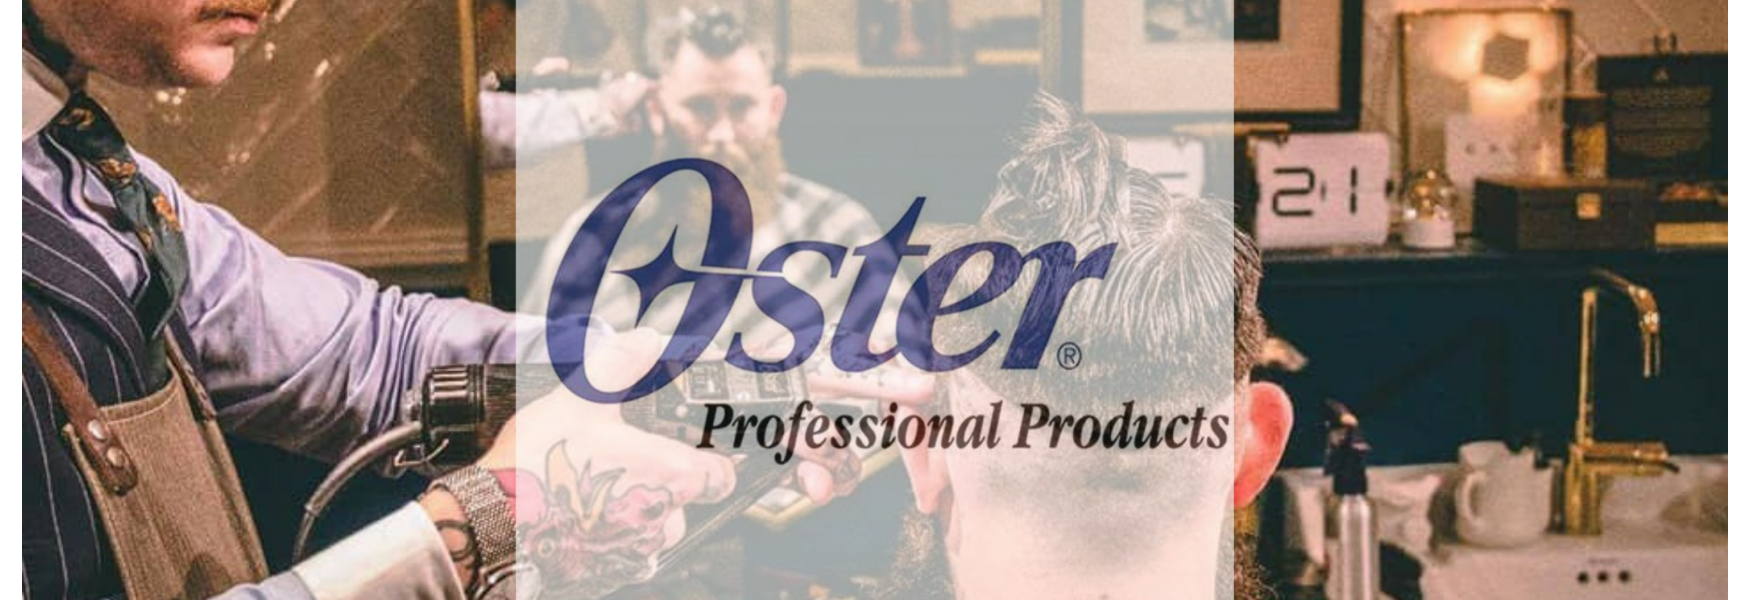 Oster Webpage Banner #1